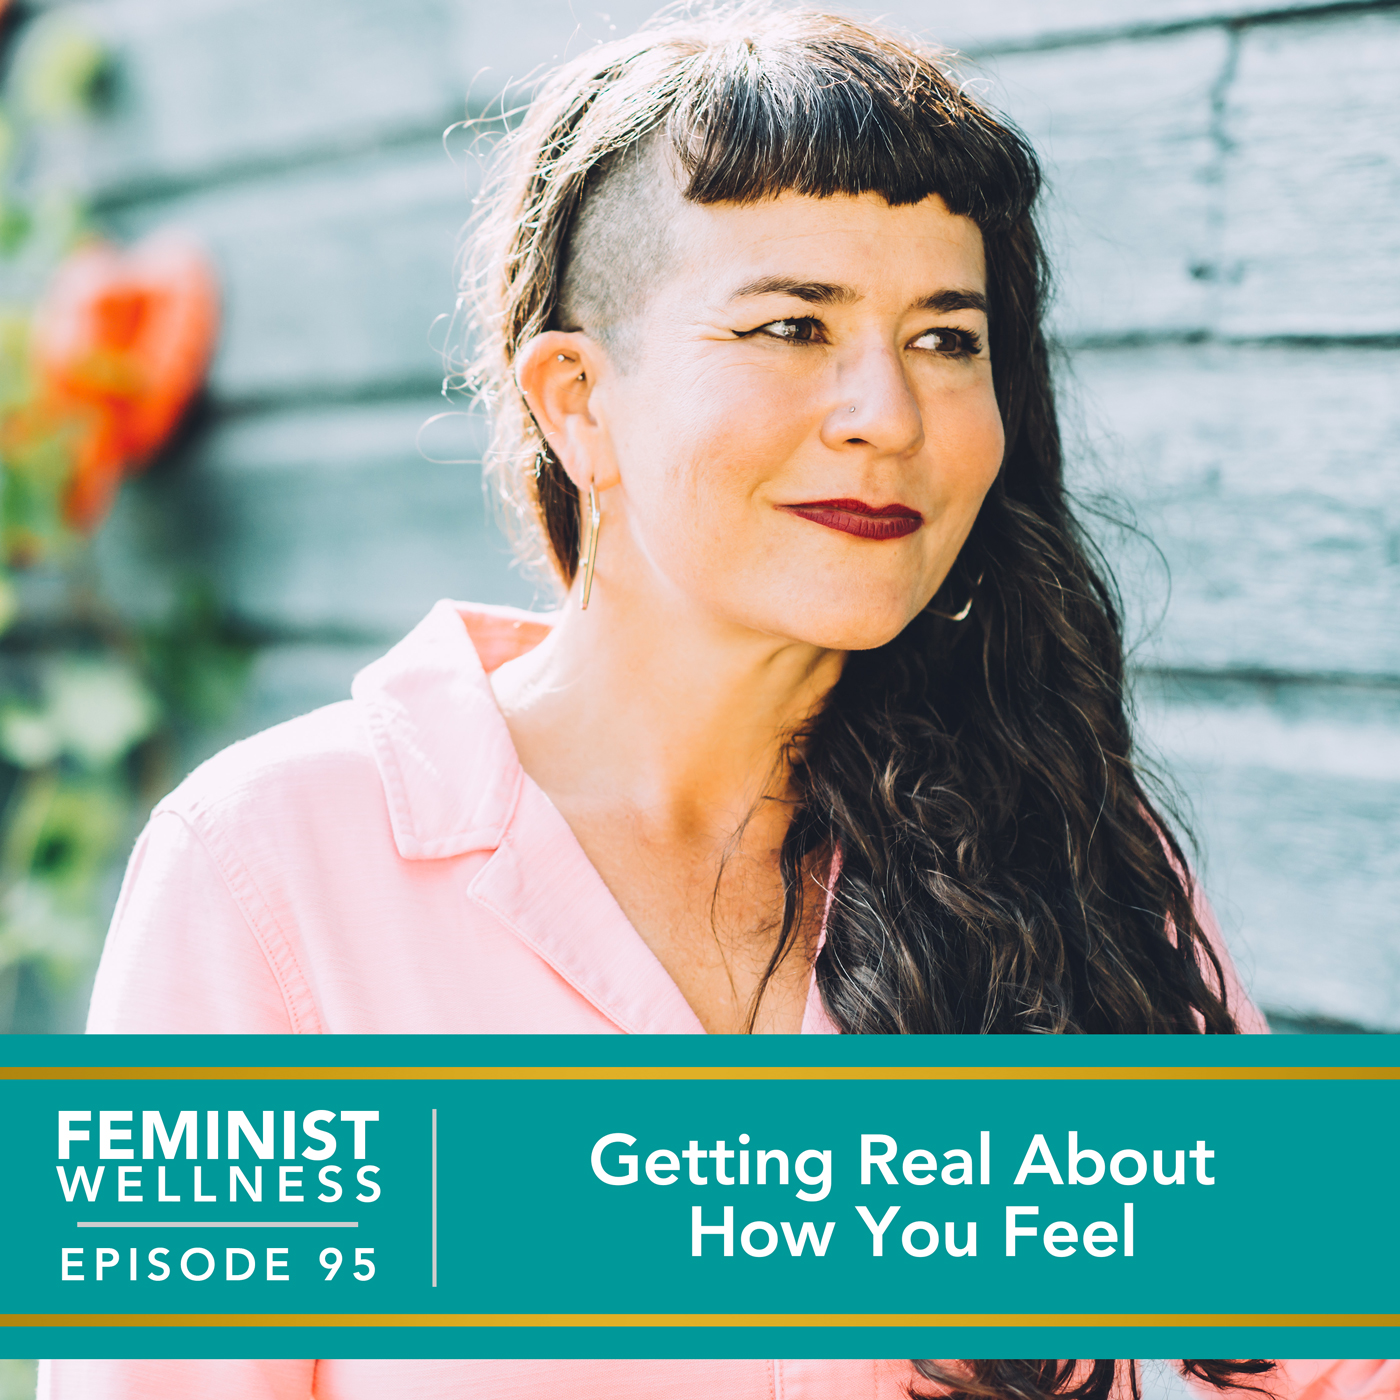 Getting Real About How You Feel